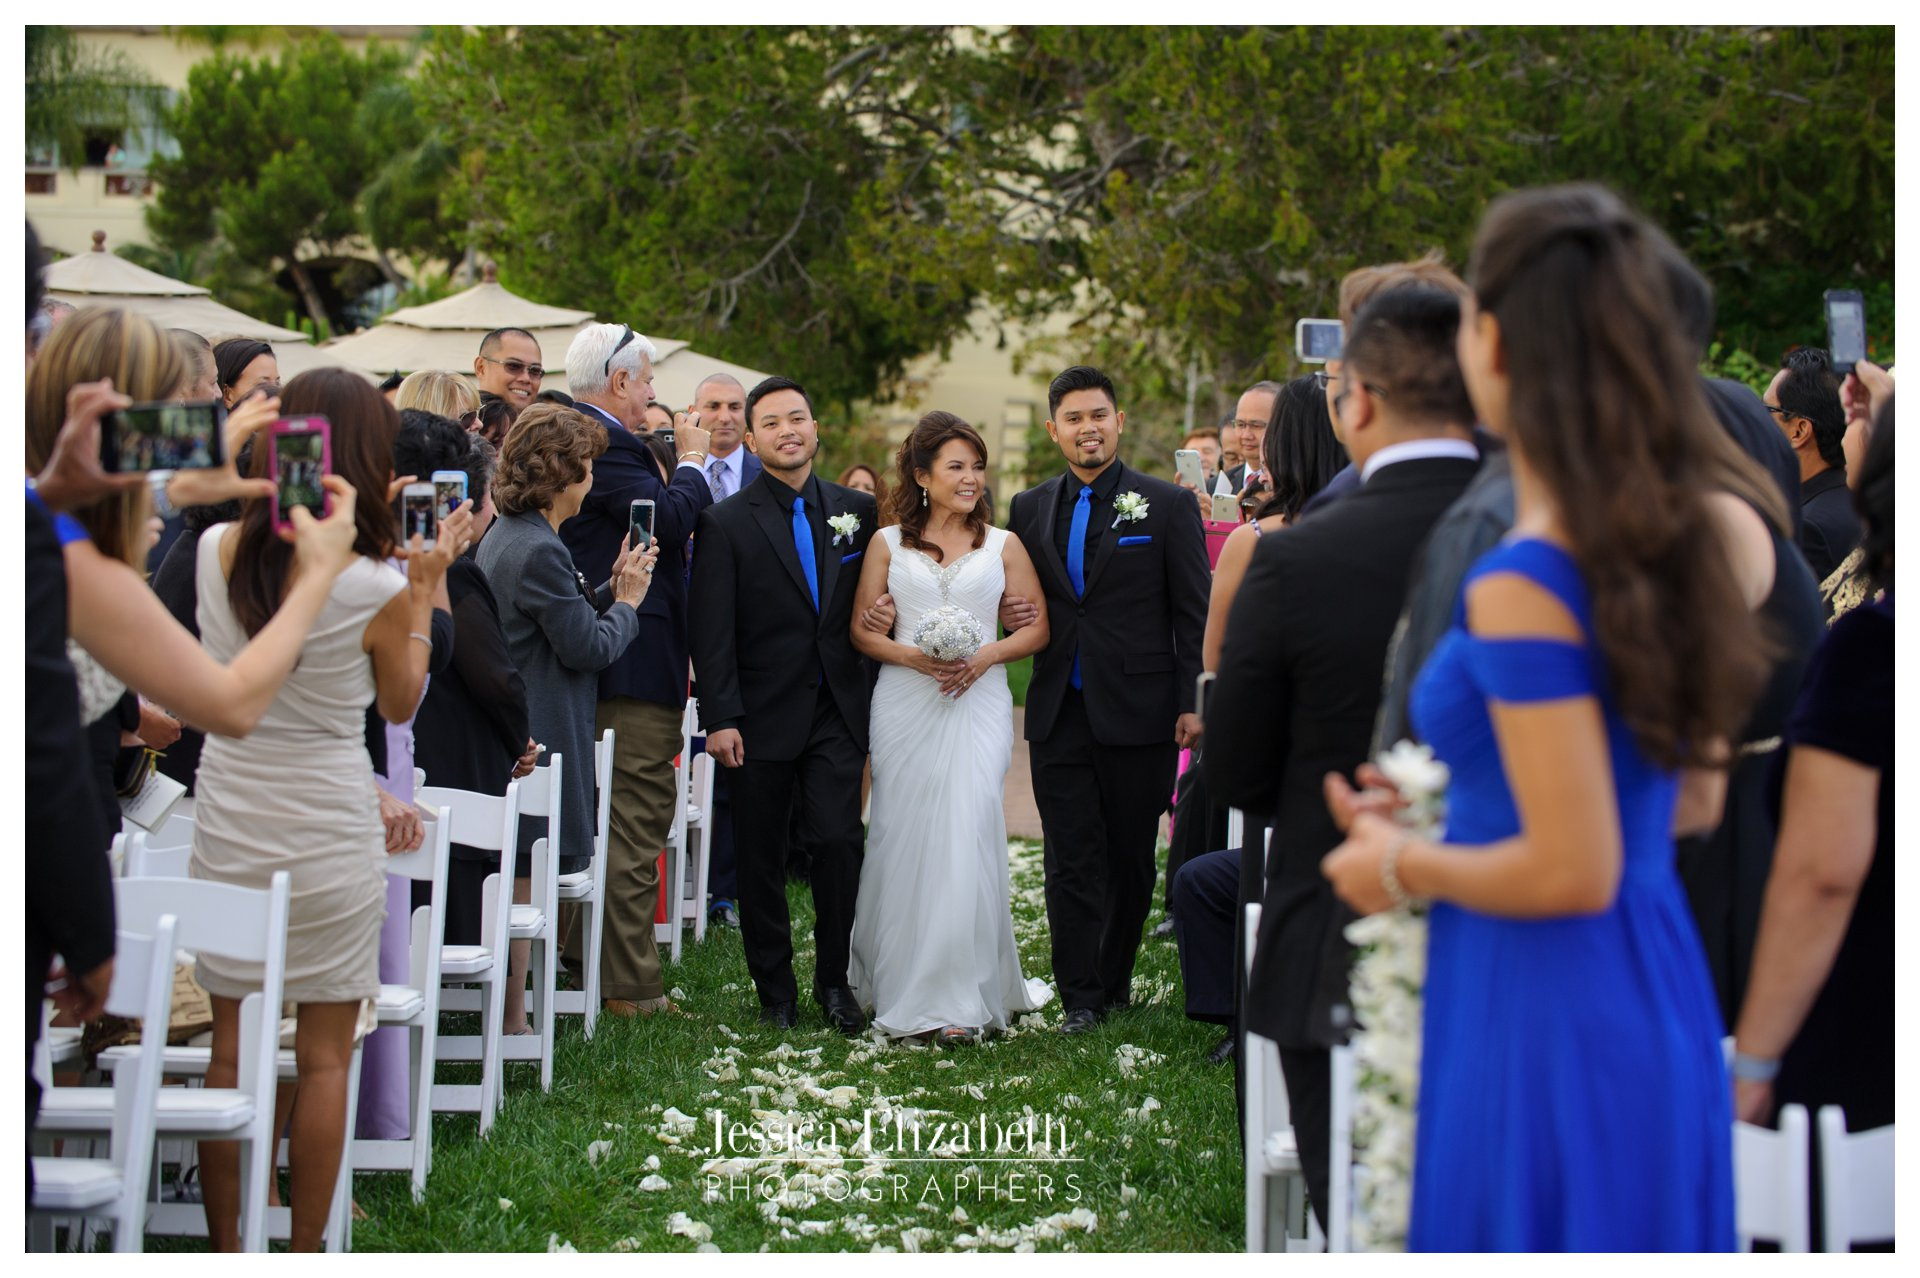 09-Terranea Palos Verdes Wedding Photography by Jessica Elizabeth-w